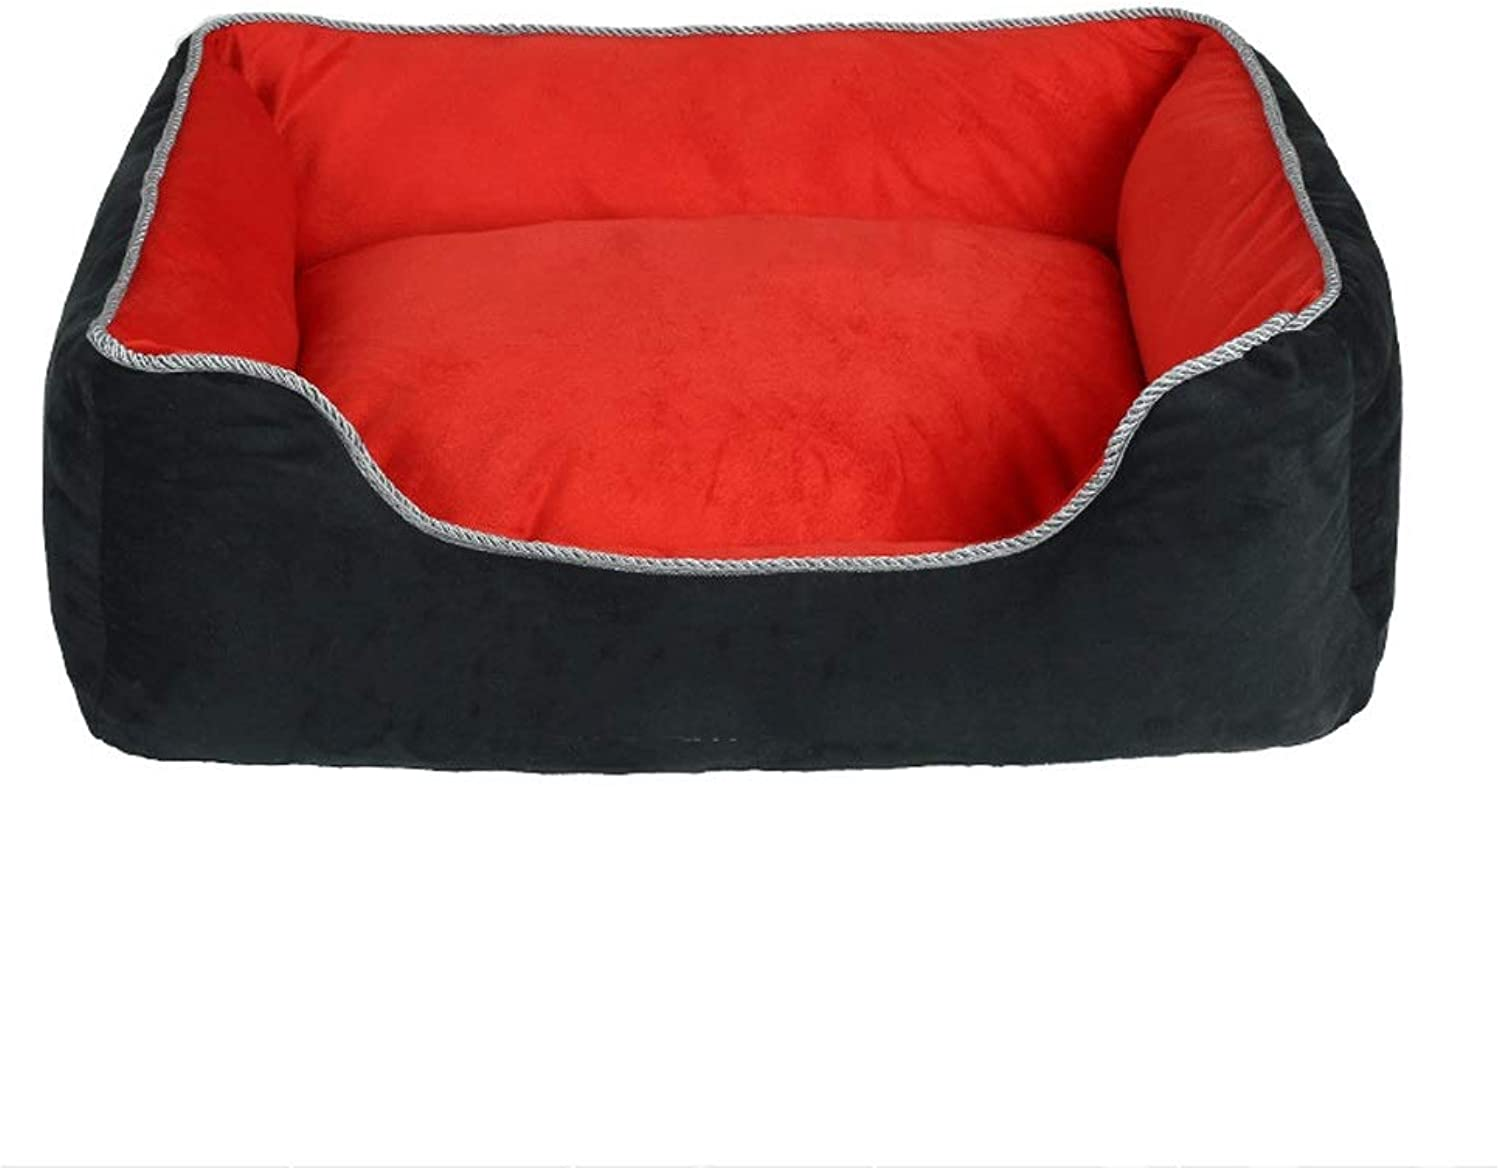 Kennel Winter Warm Suede Can Be Completely Removed and Washed Square Pet Nest (color   Red, Size   L)